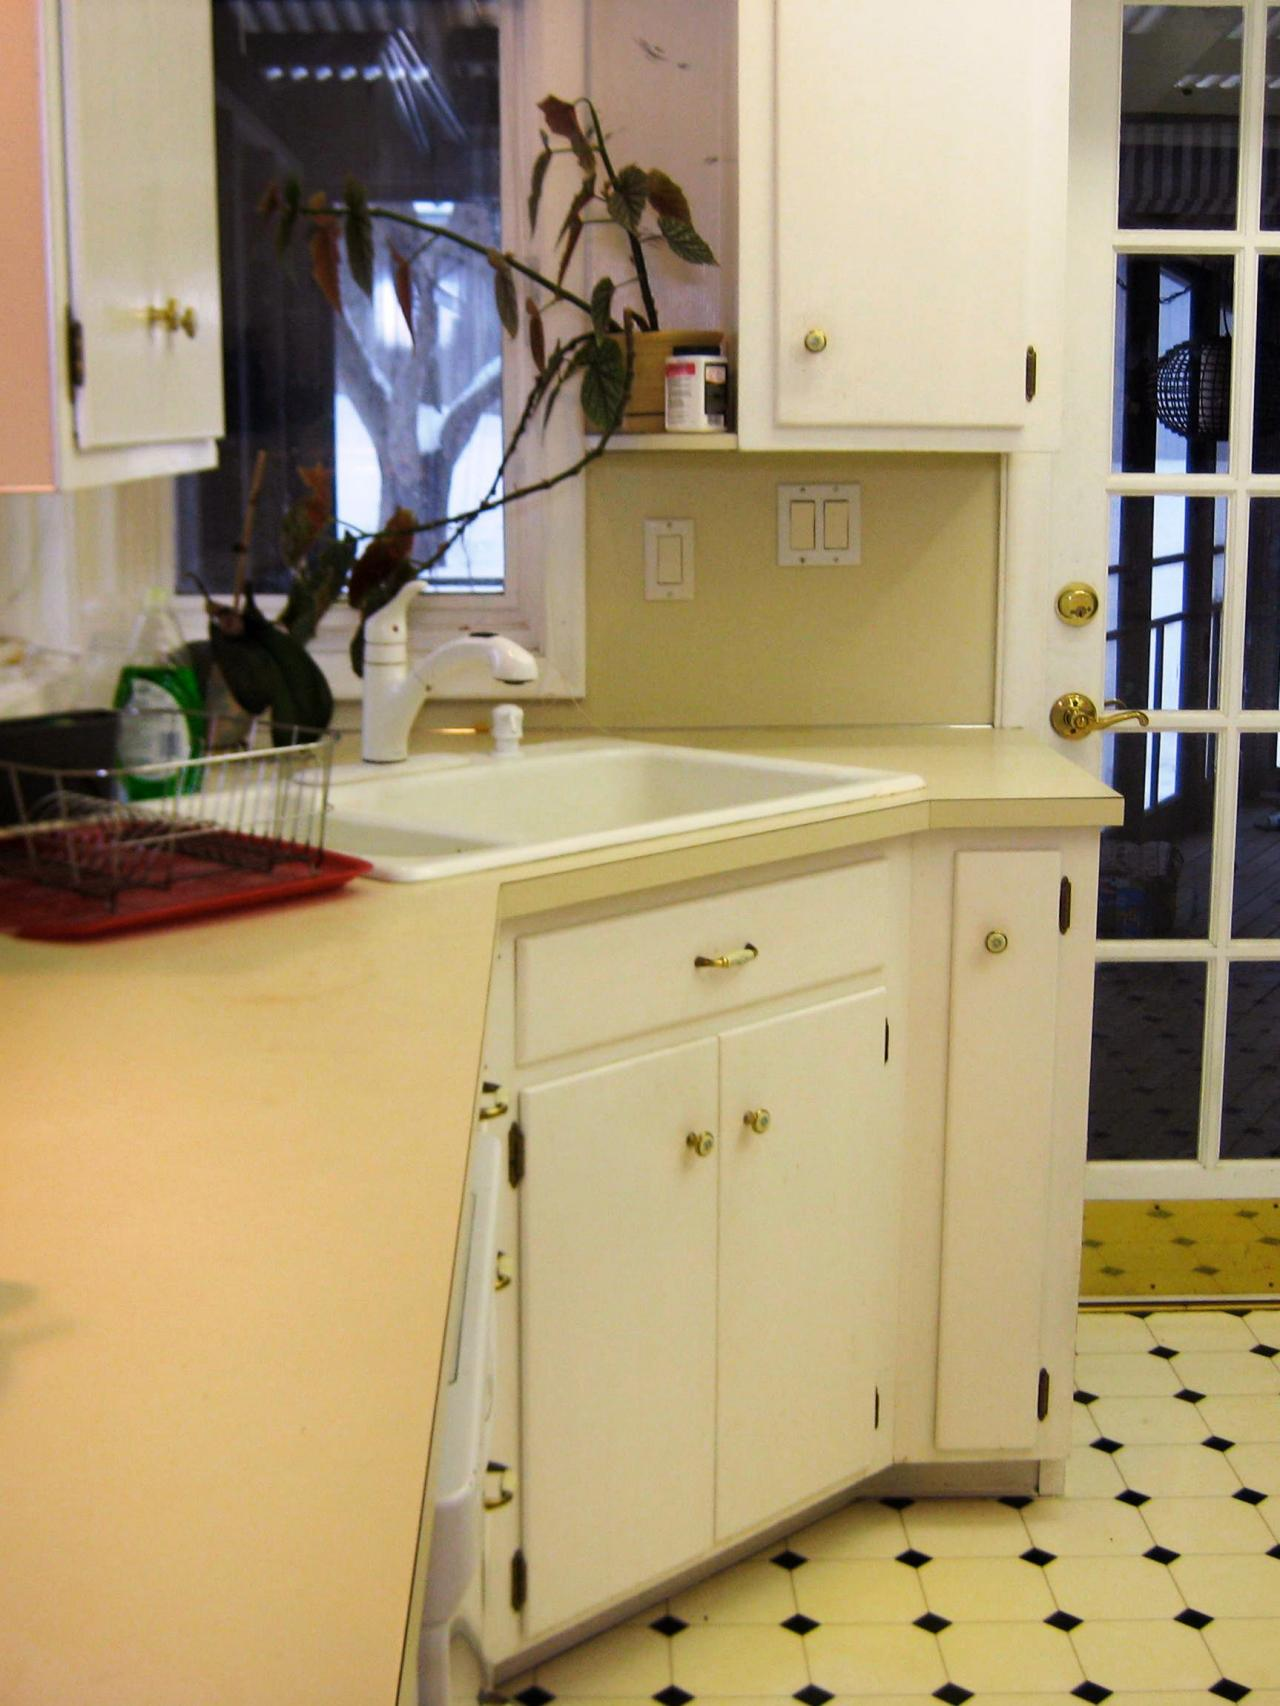 Budget friendly before and after kitchen makeovers diy for Before after kitchen makeovers